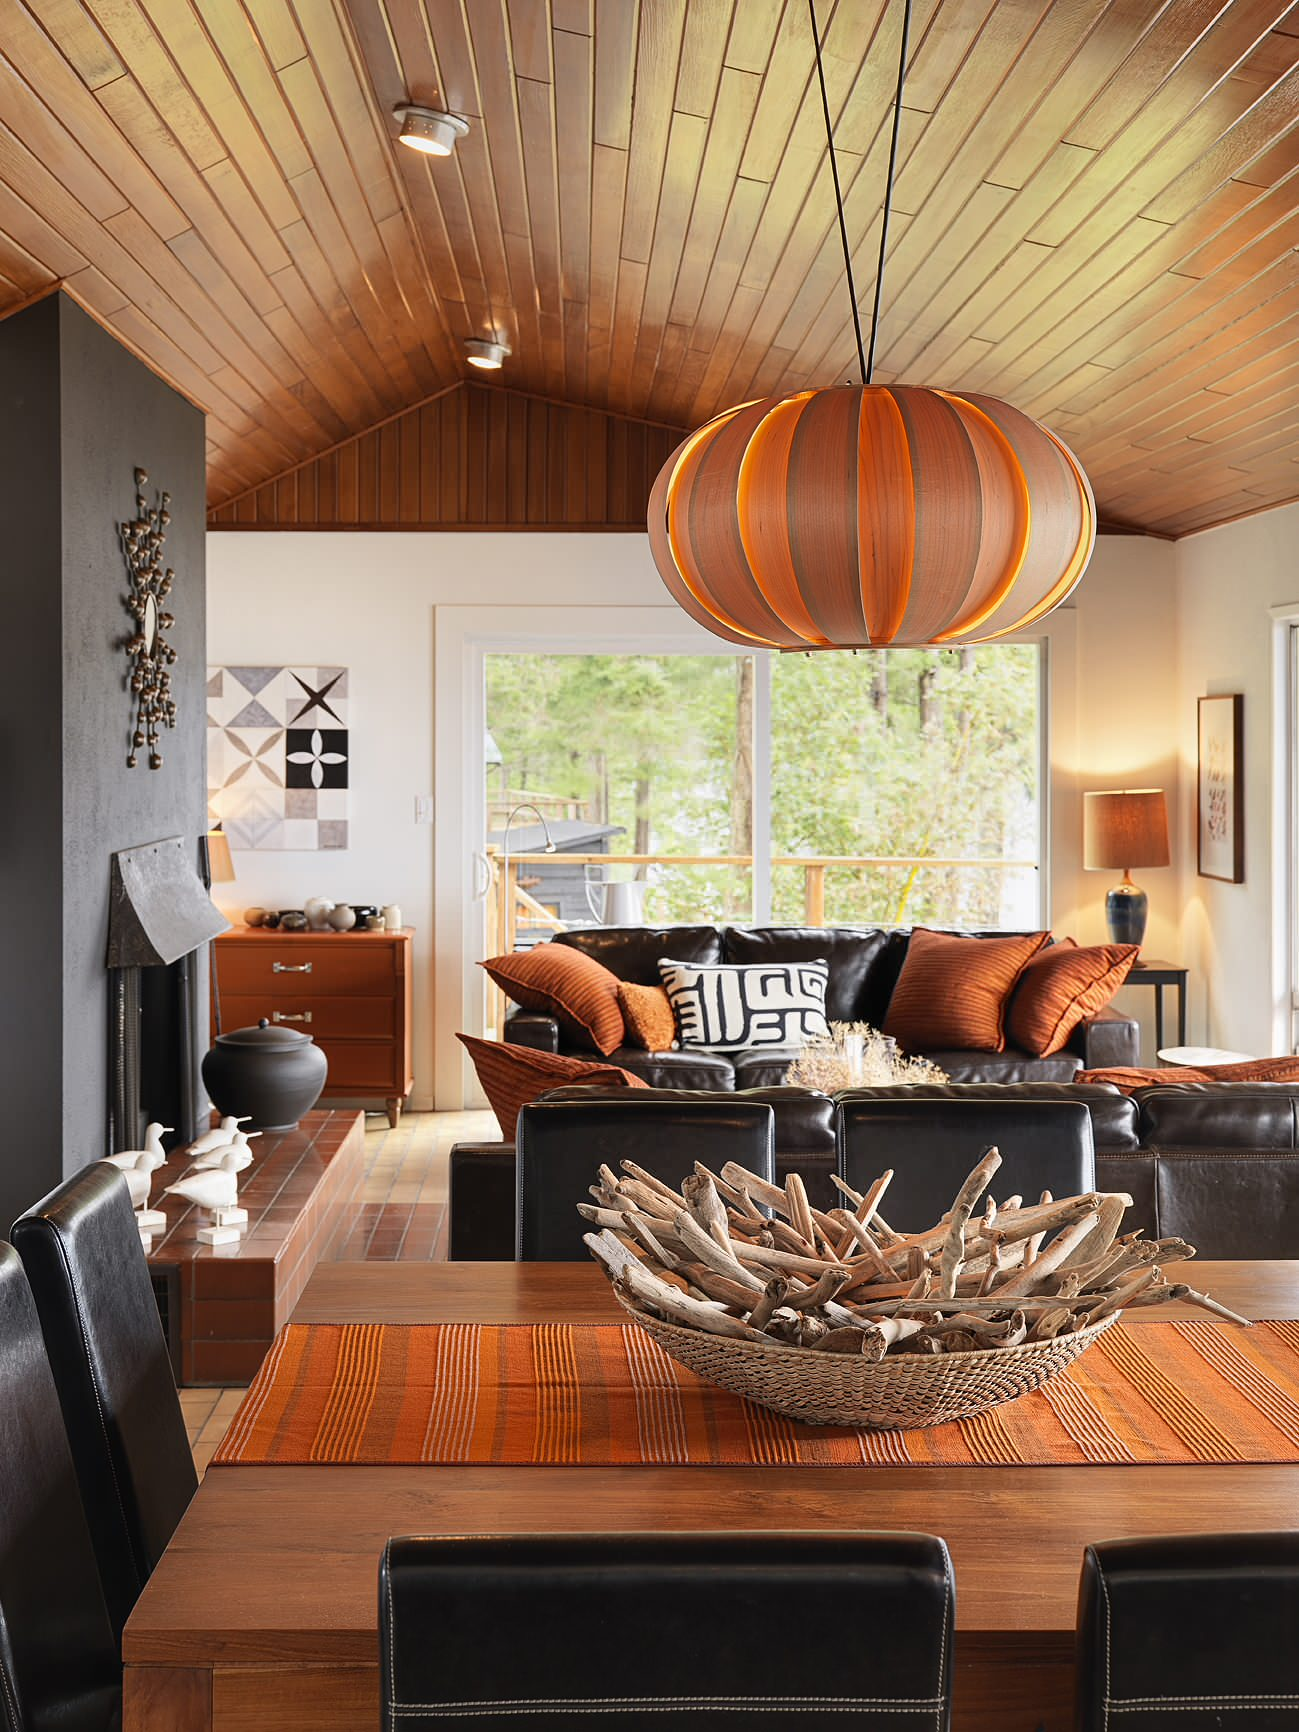 Warm shades of the ceiling light, the runner on the table and accessories in the living room